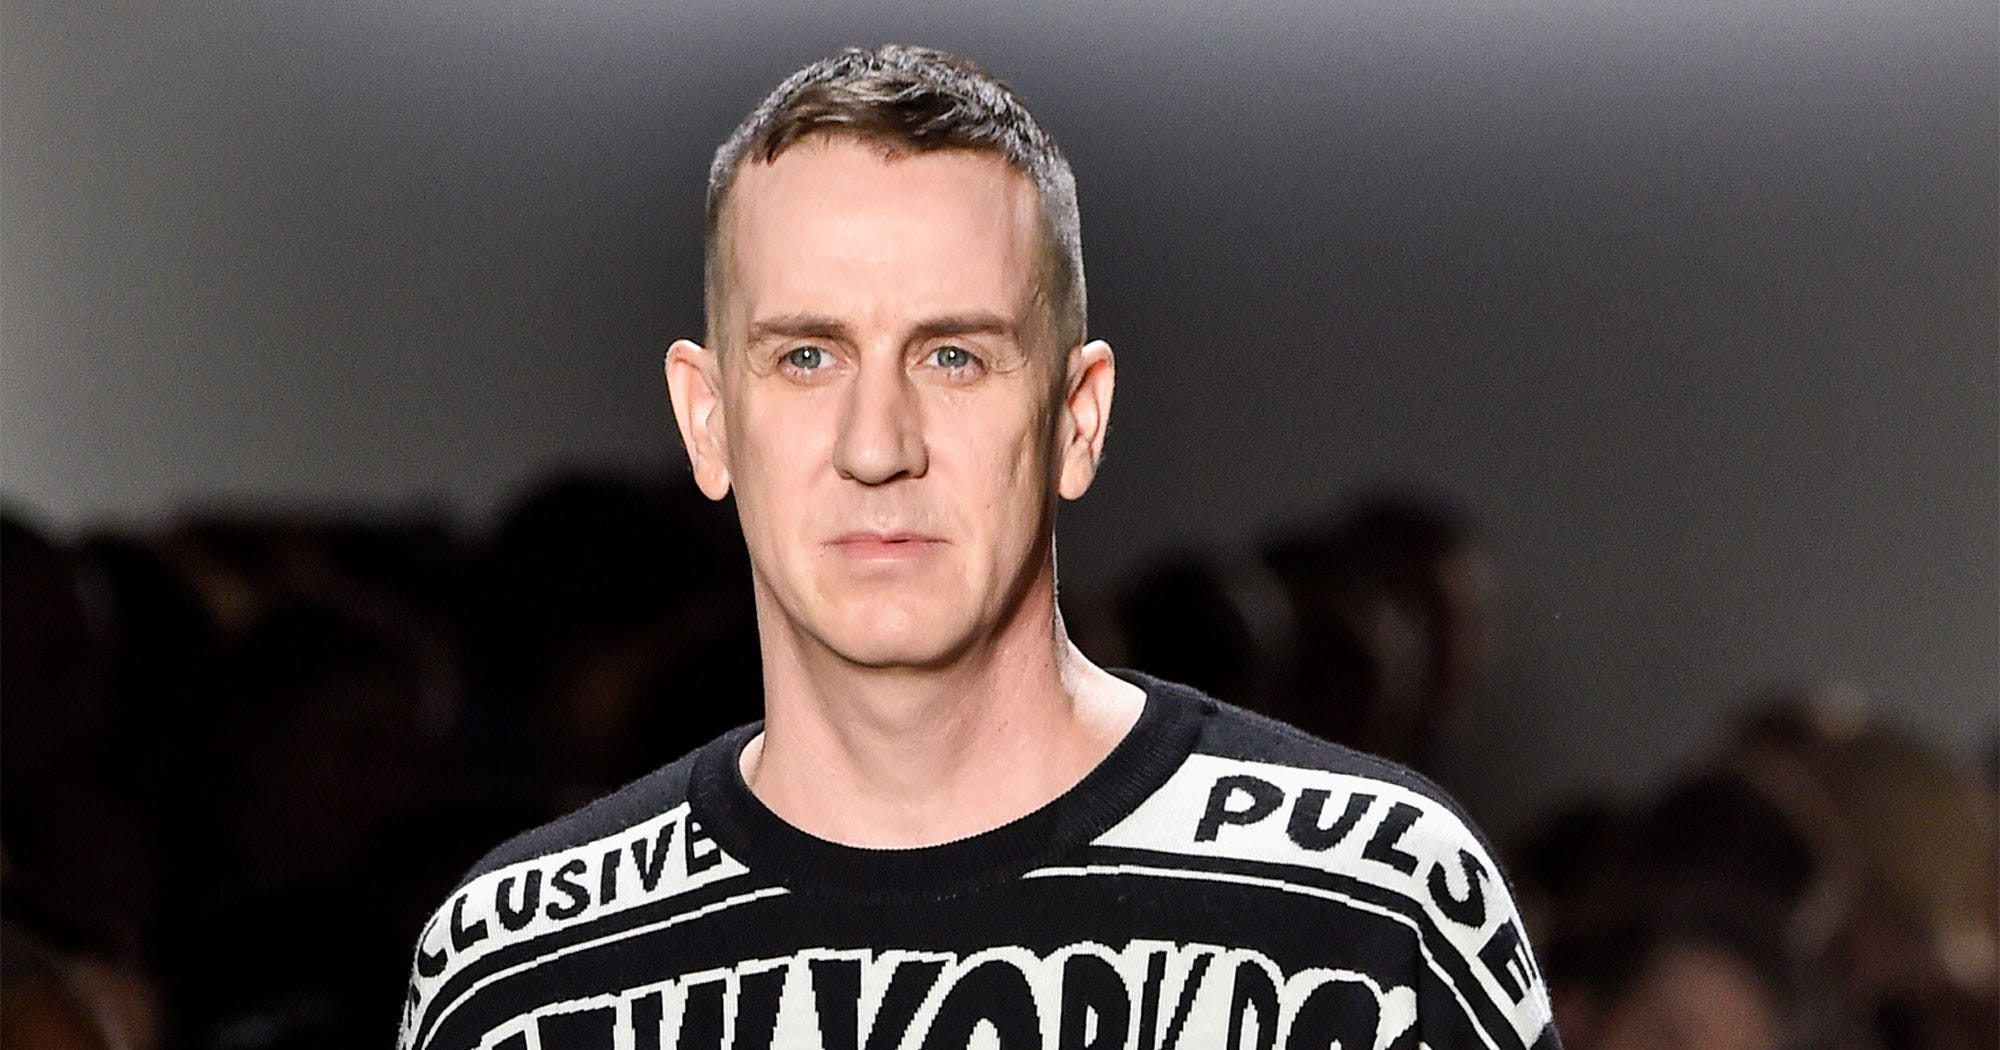 Inside Jeremy Scott's Design Process For Moschino x The Sims